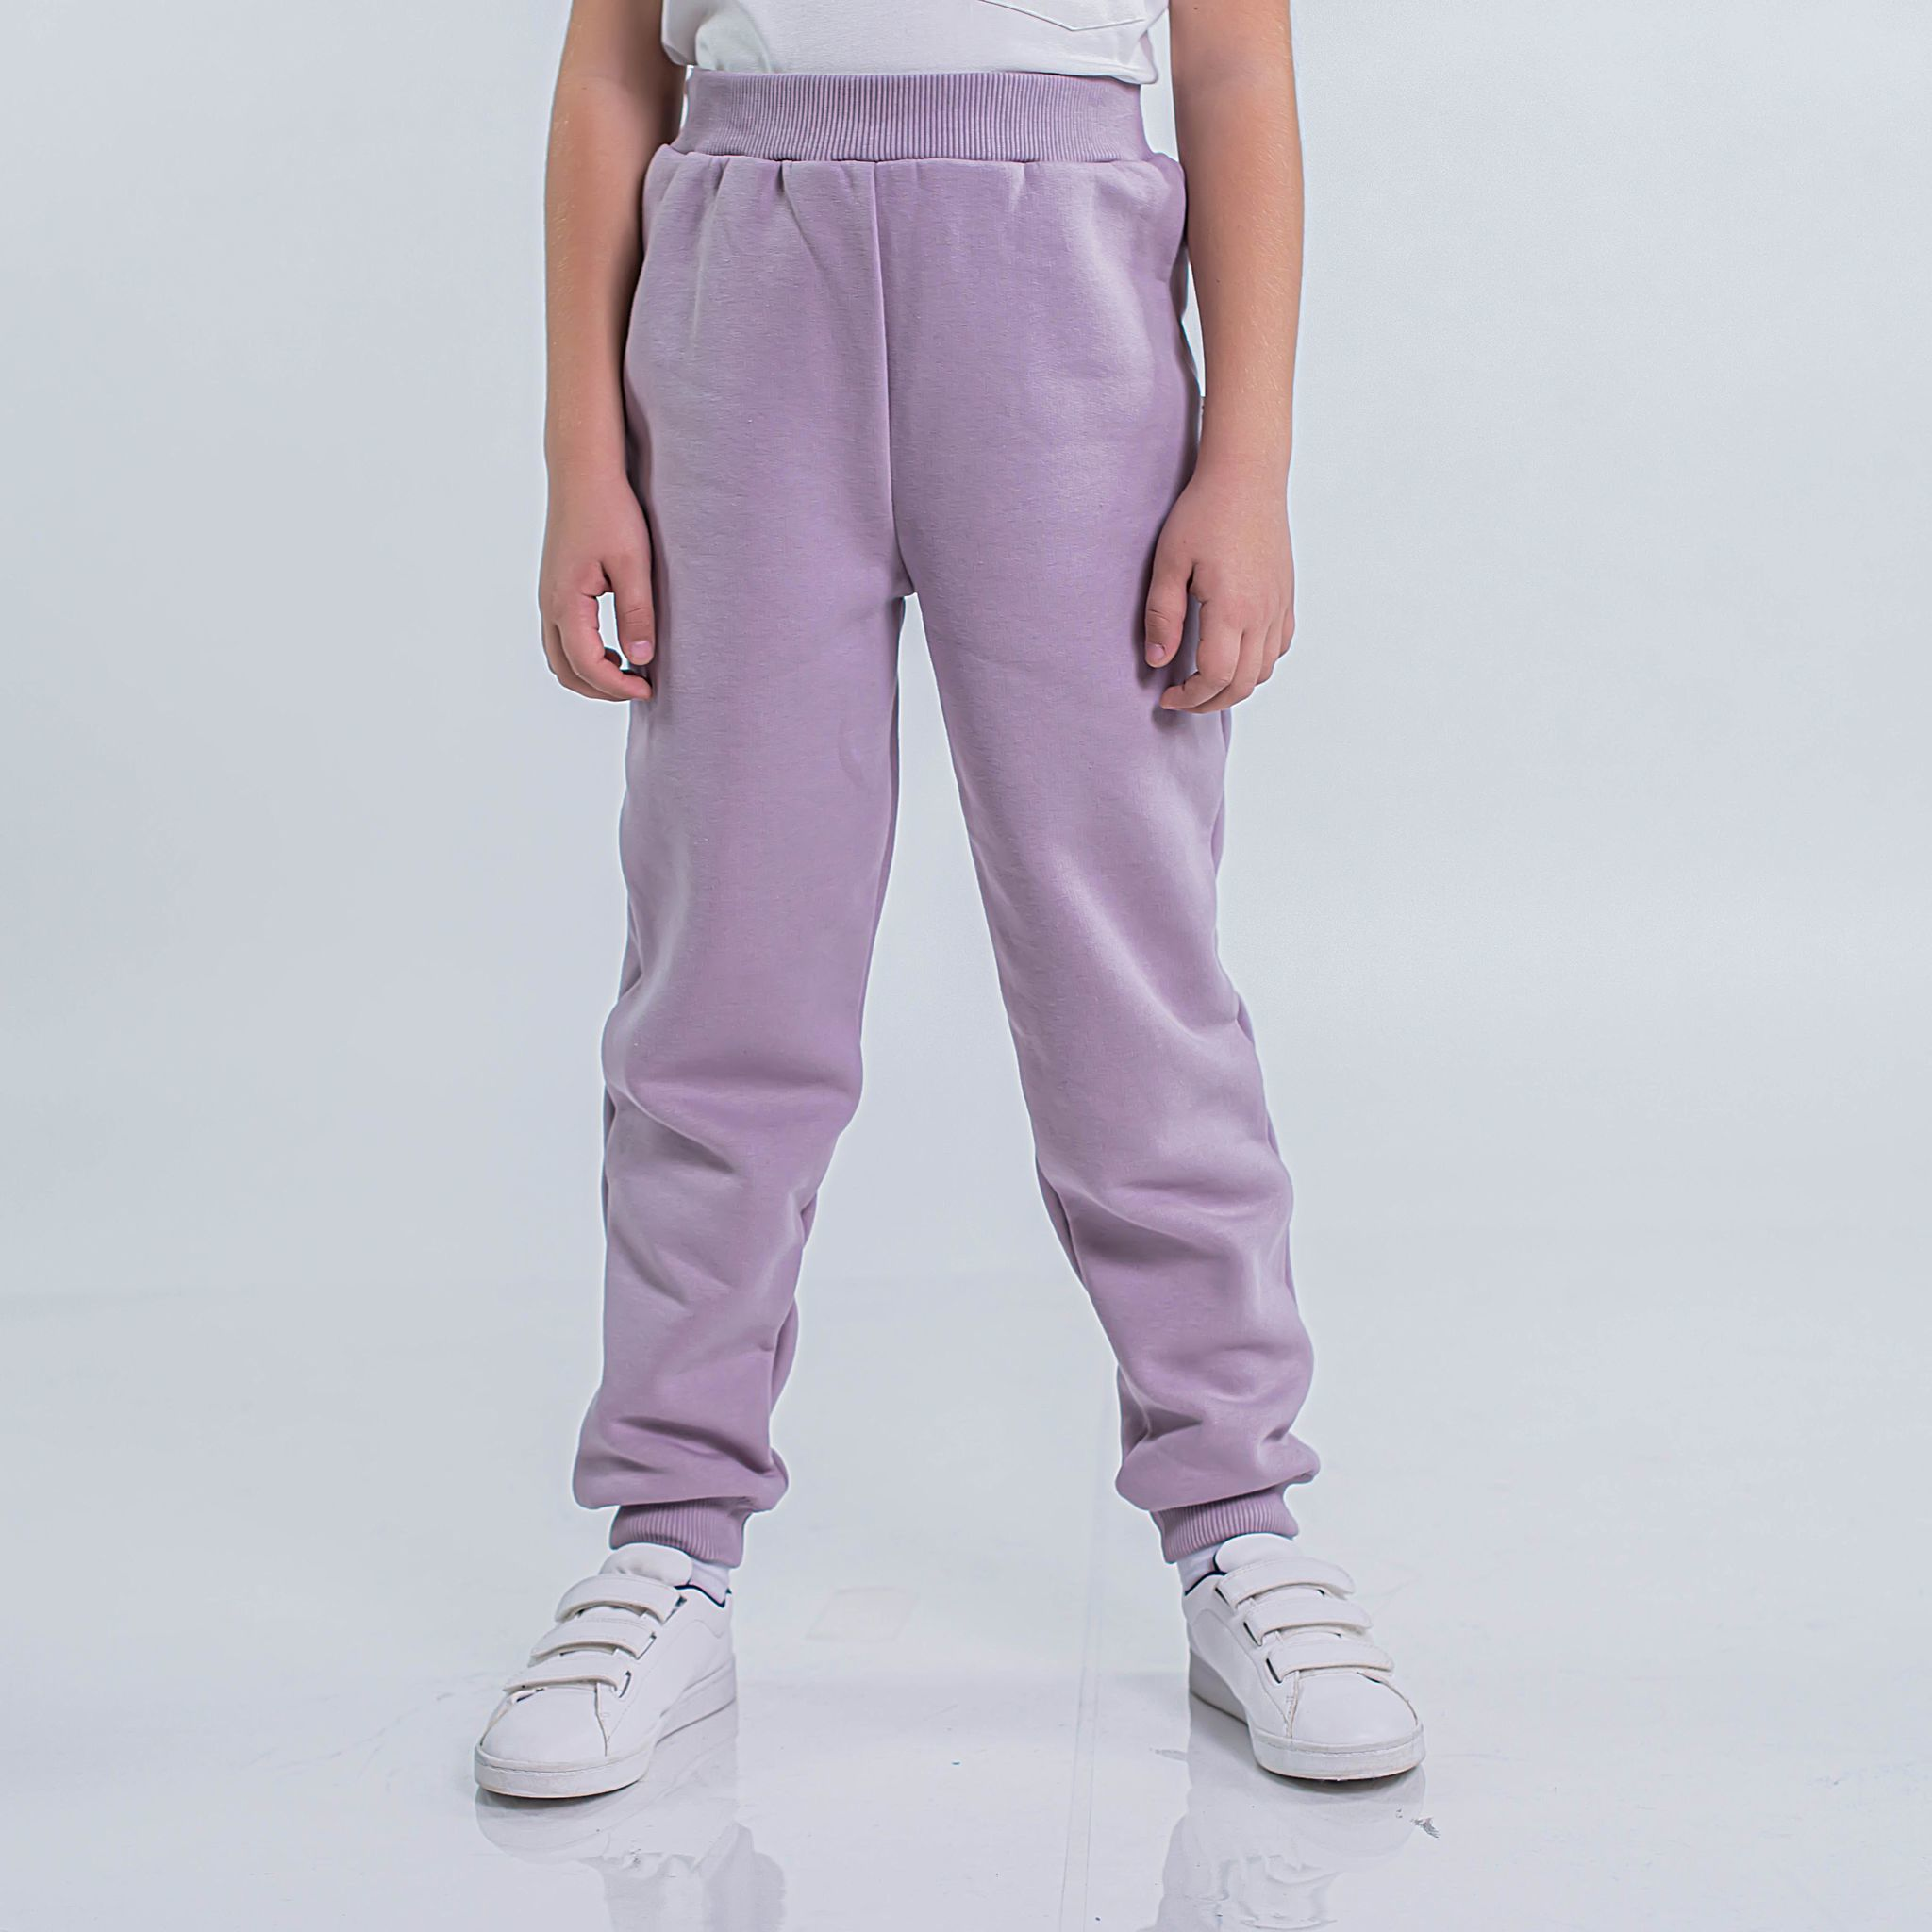 Warm trousers with pocket for teens - Heather